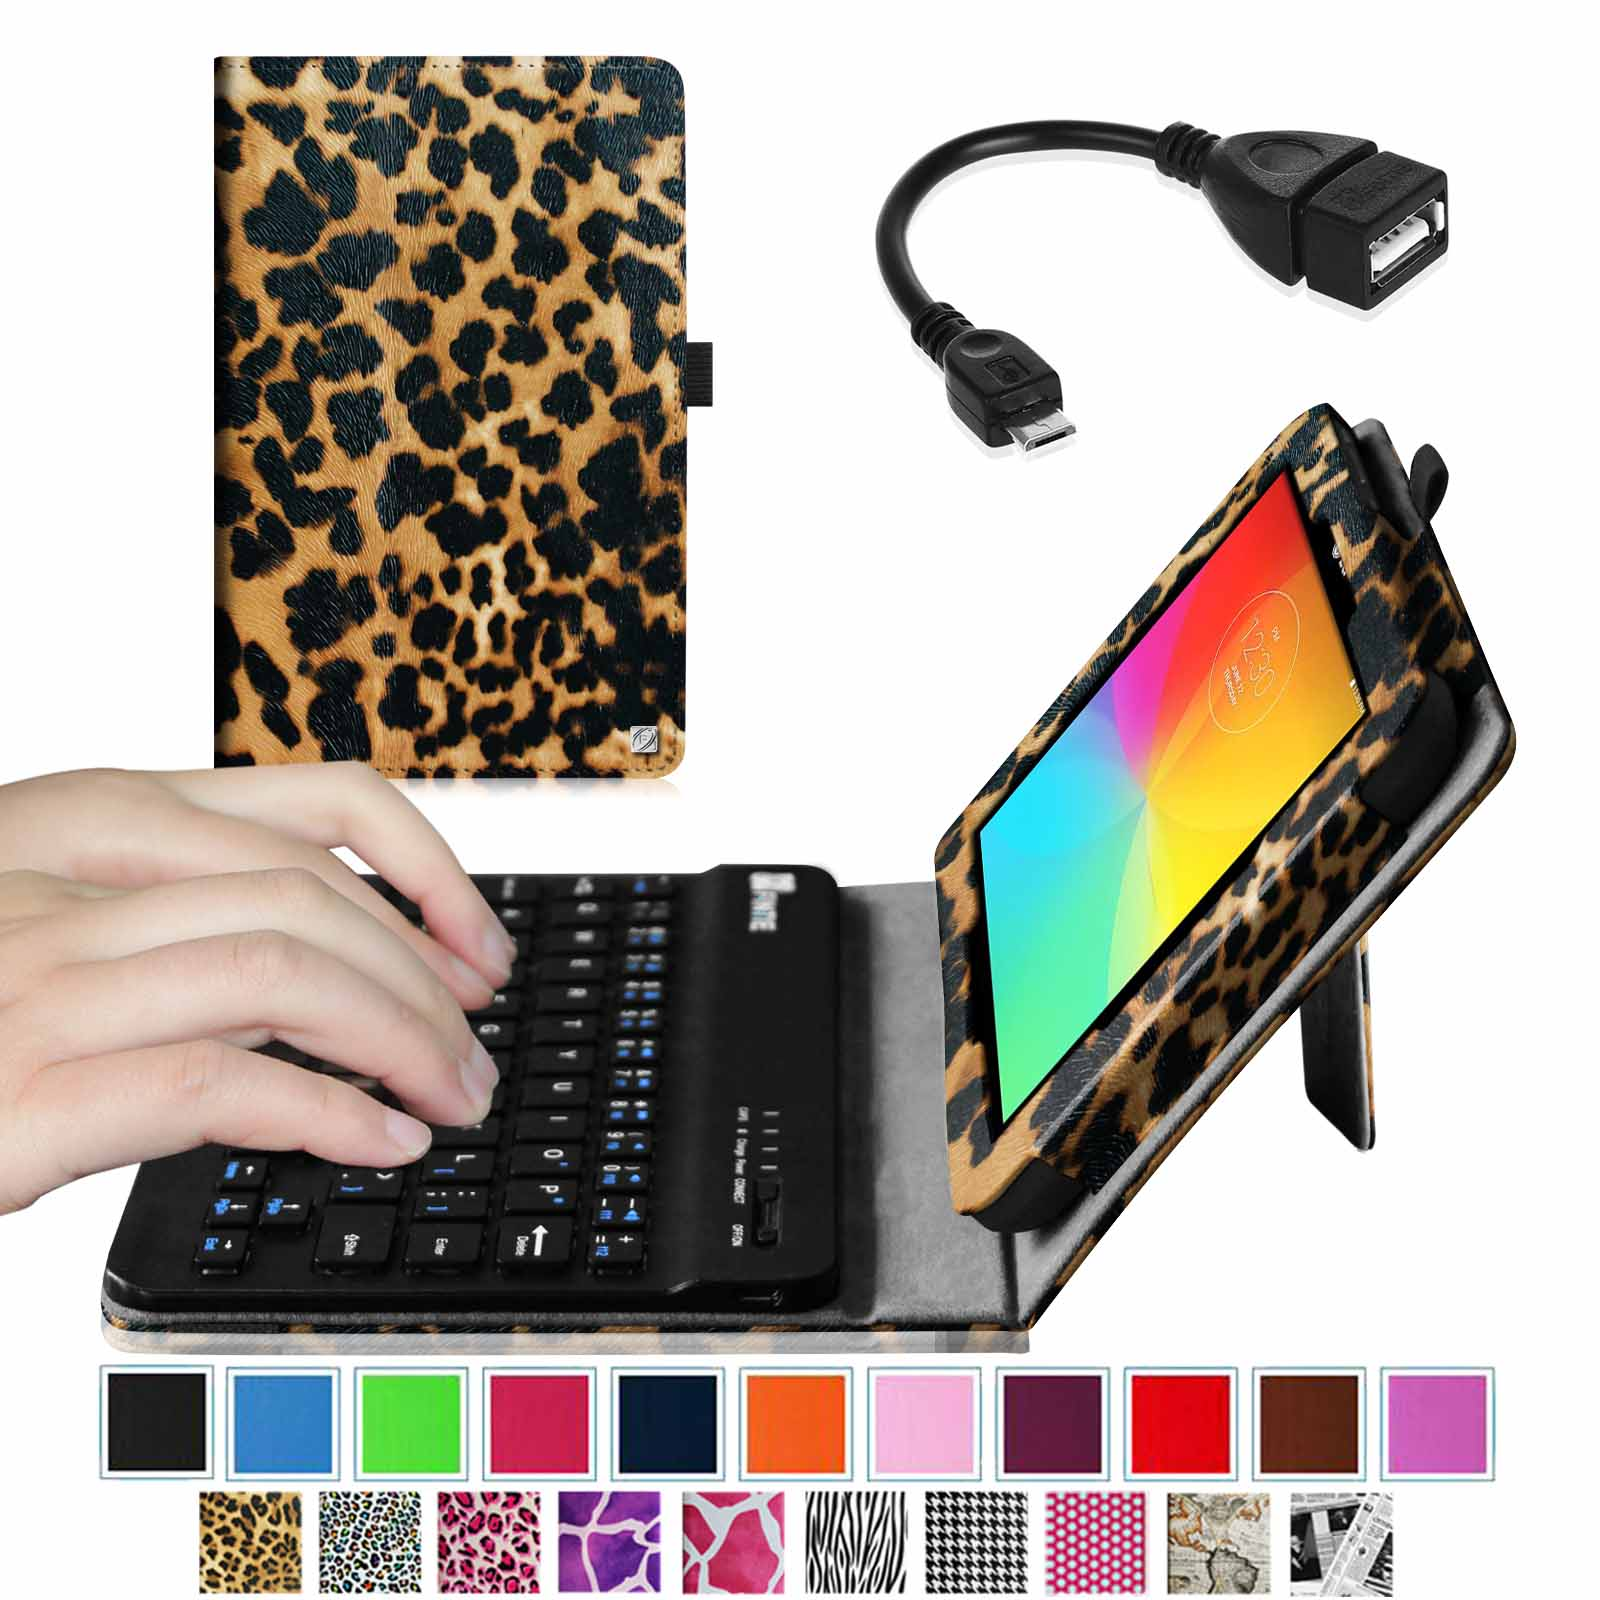 Fintie LG G Pad 7.0 Keyboard Case - Premium Leather Stand Cover w/ Wireless Bluetooth Keyboard + OTG Cable,Leopard Brown